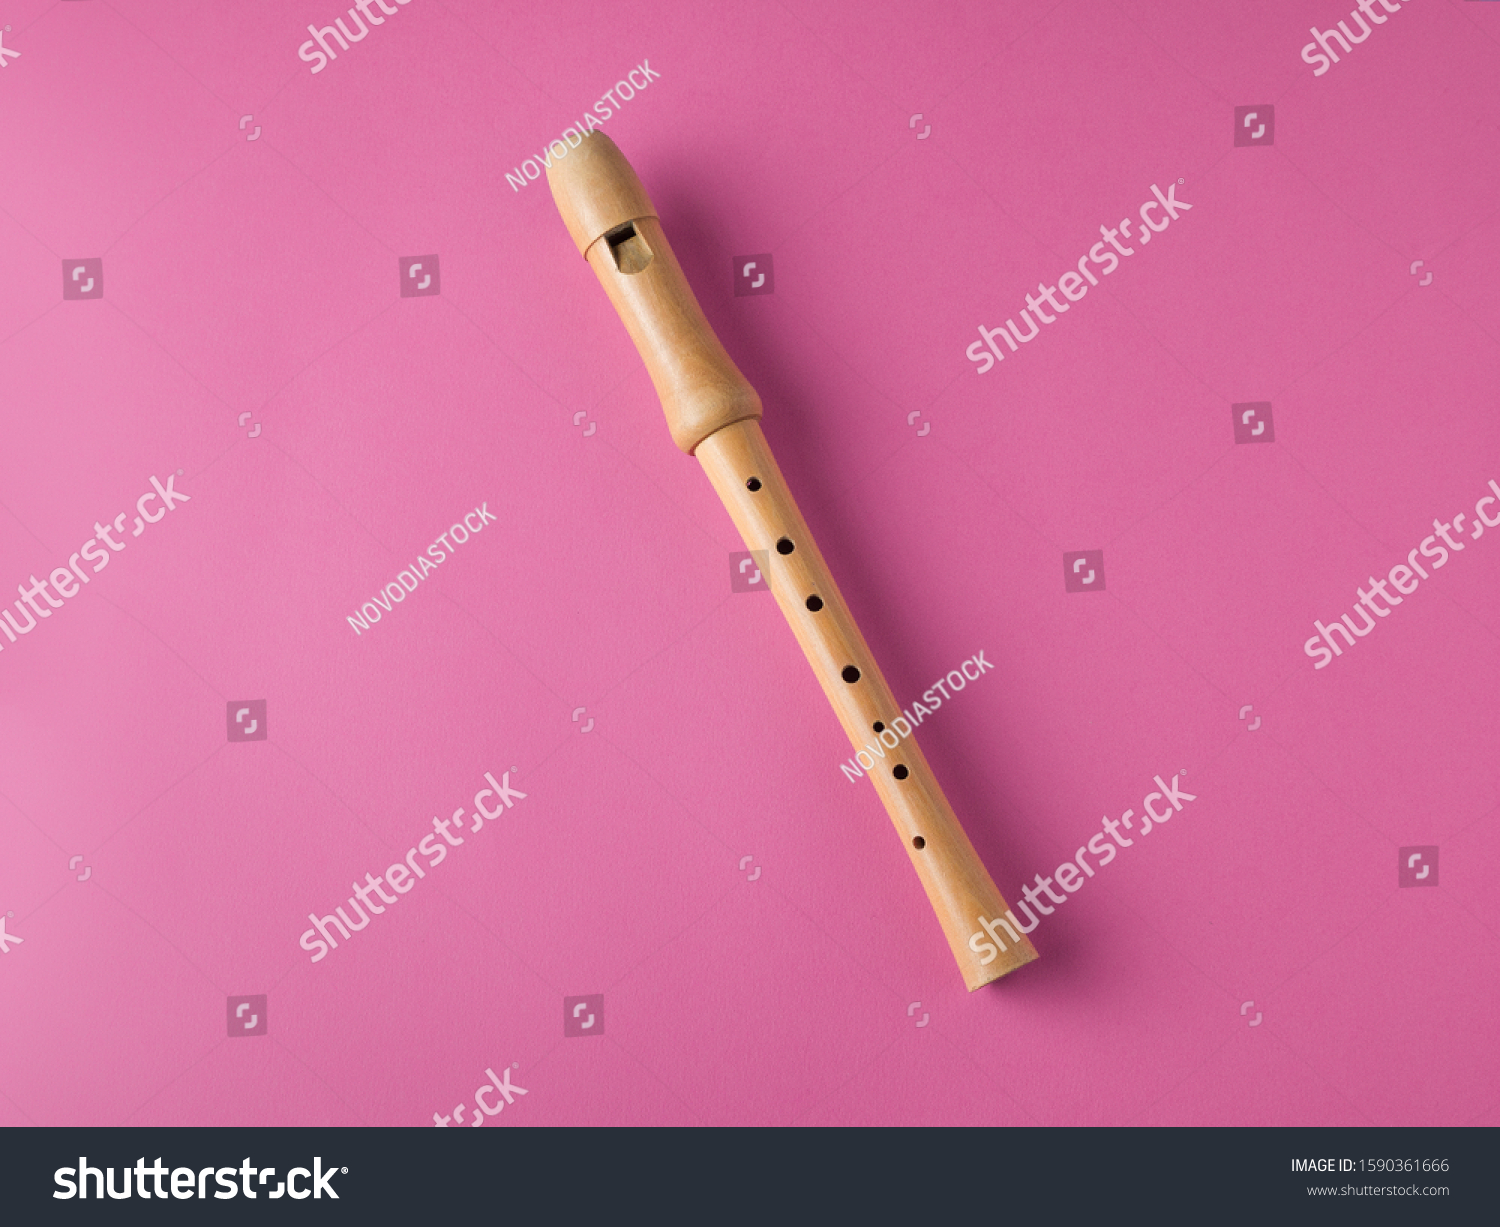 wooden recorder isolated on pink background, with copy space, musical education concept #1590361666